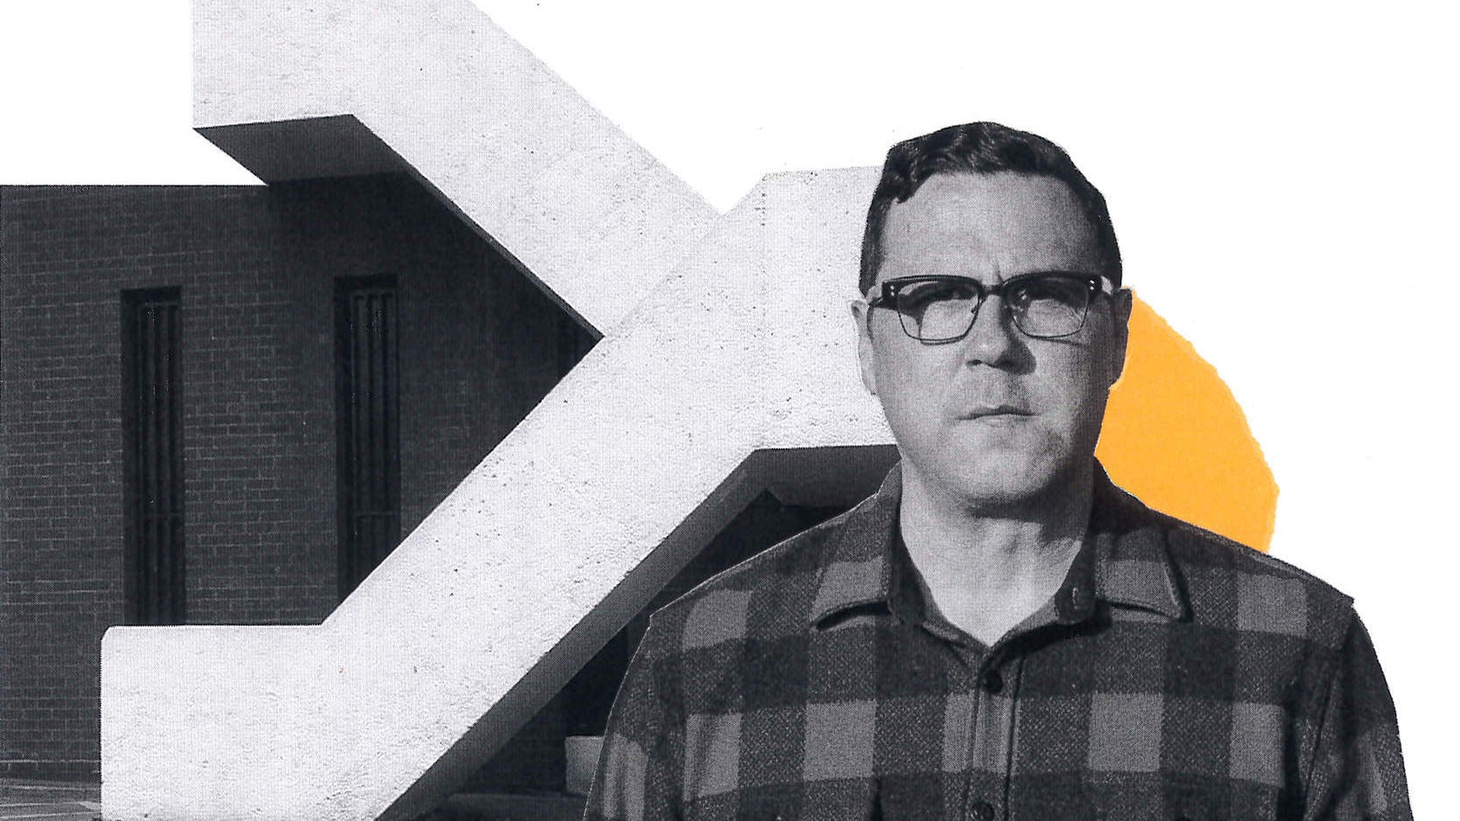 """Damien Jurado's new album drops at the end of the week and is his first self-produced recording in a 20+year career. The elegant stripped-down ballad """"Allocate"""" starts the record off."""